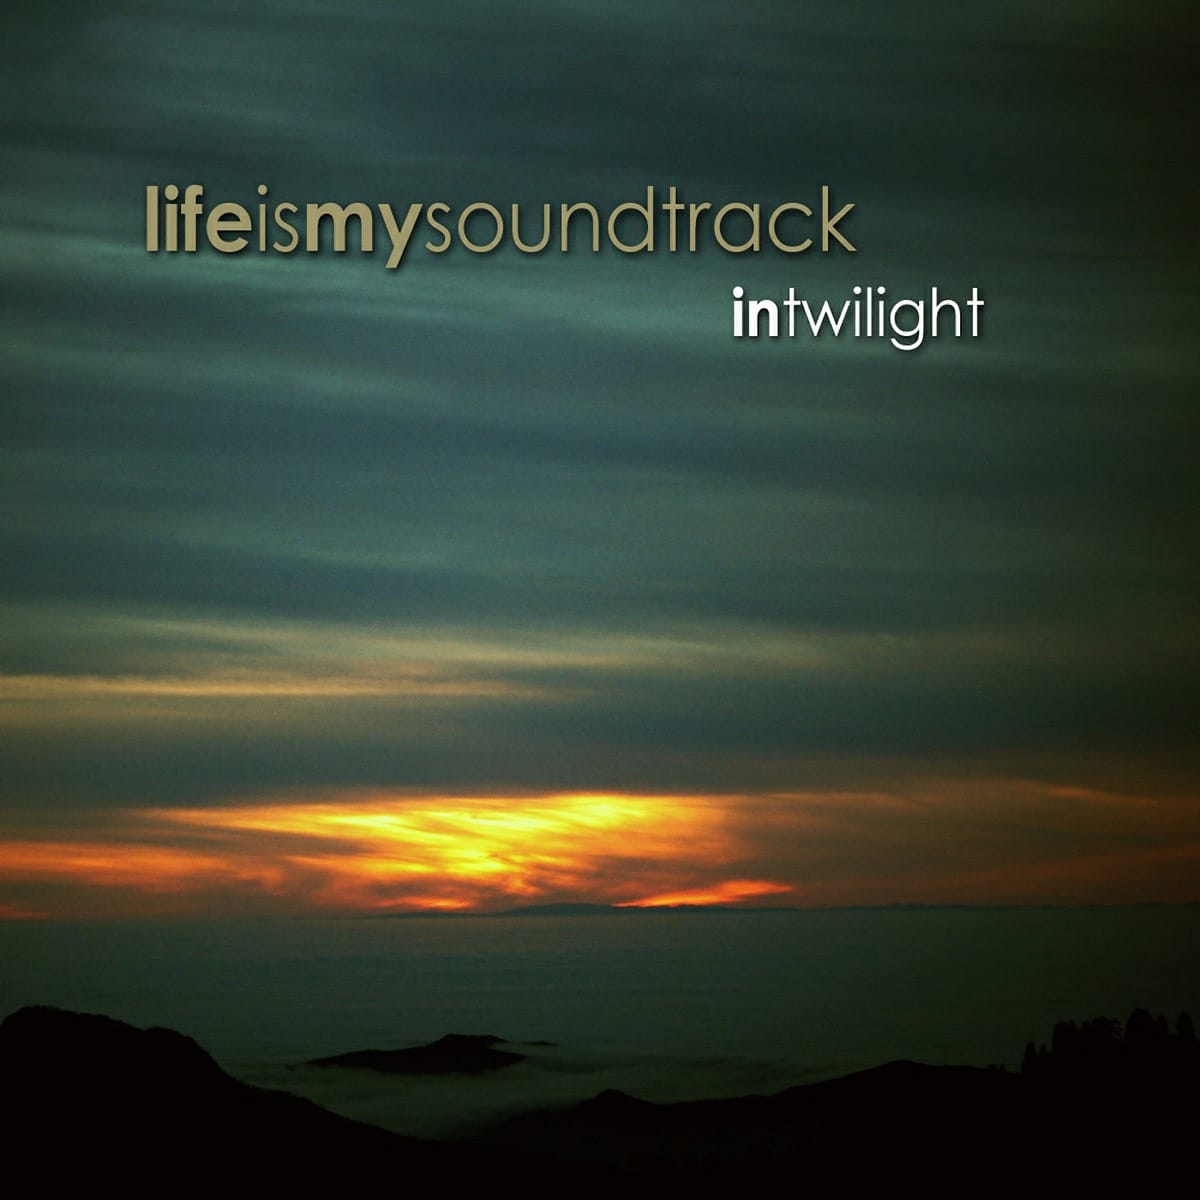 The album In Twilight by Life Is My Soundtrack - A song to listen to in the dark